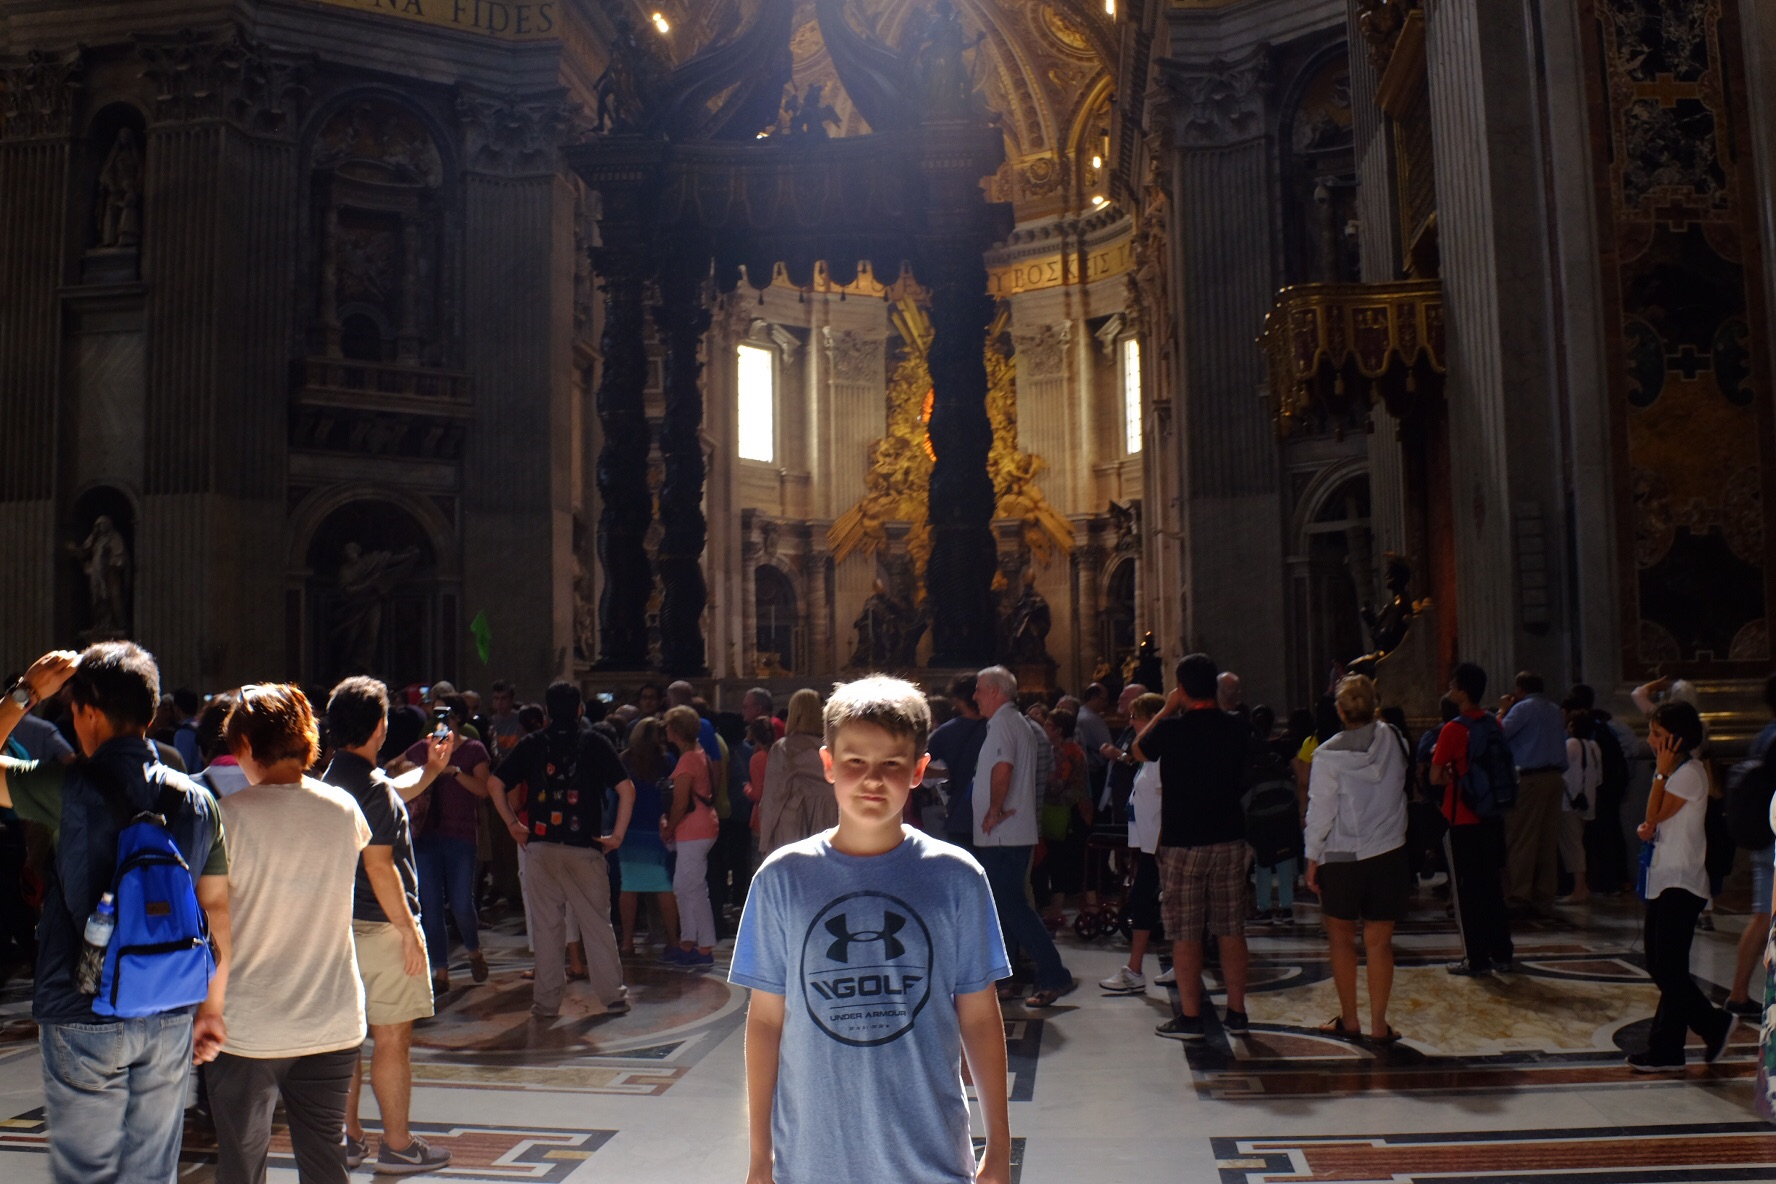 My ray of light inside St Peter's Basilica